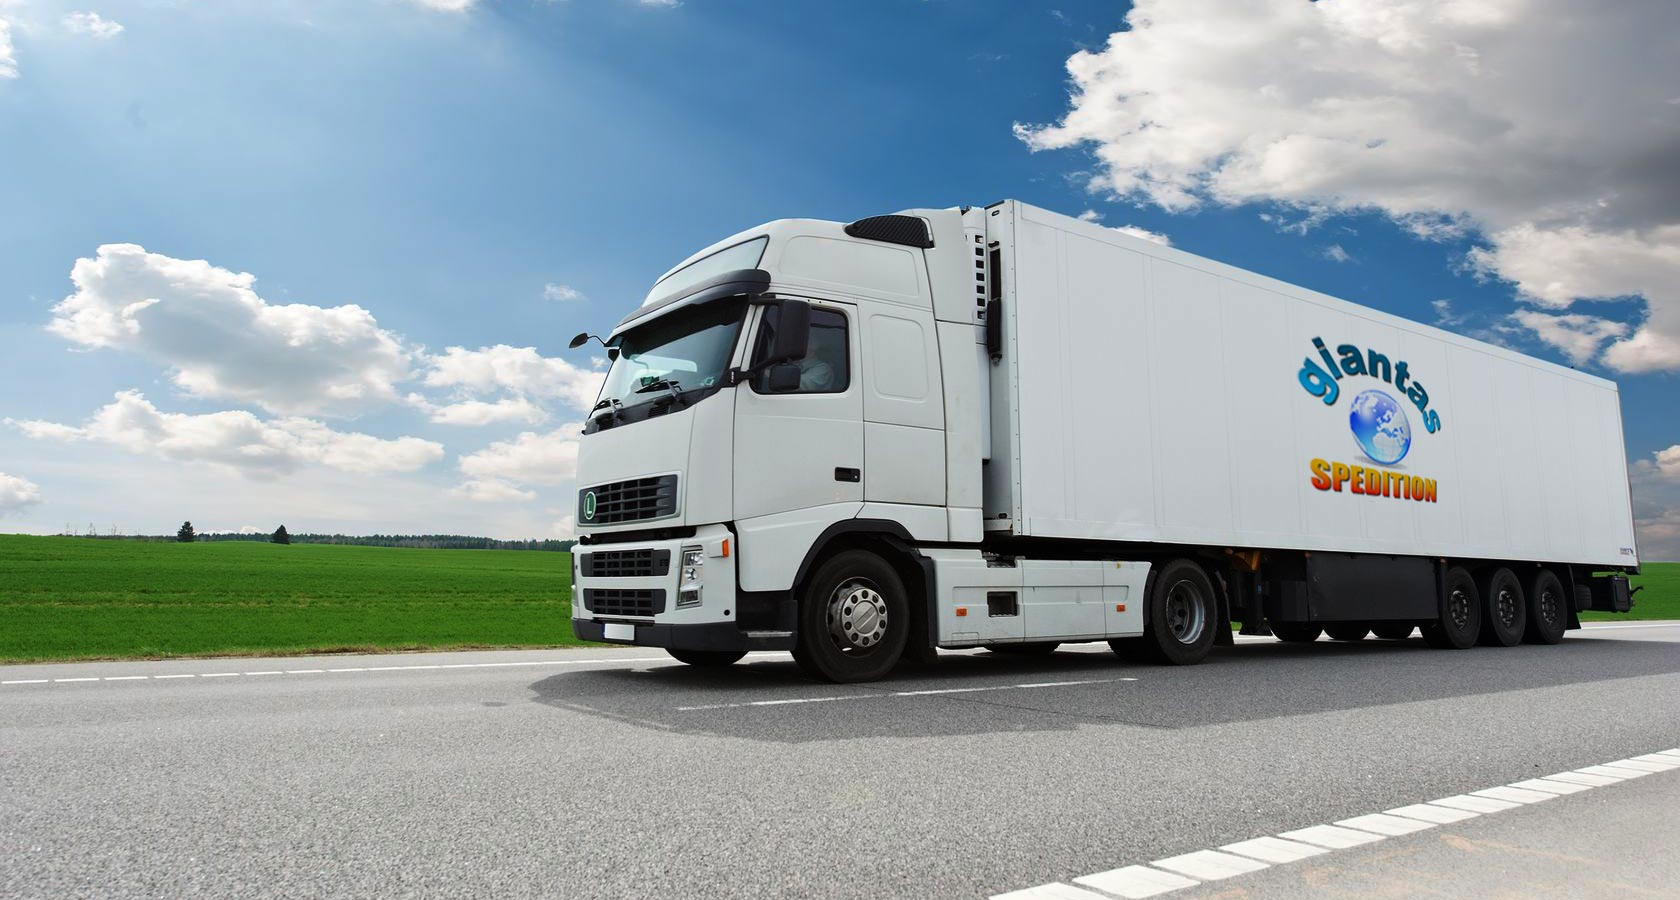 European Road Transport - LKW